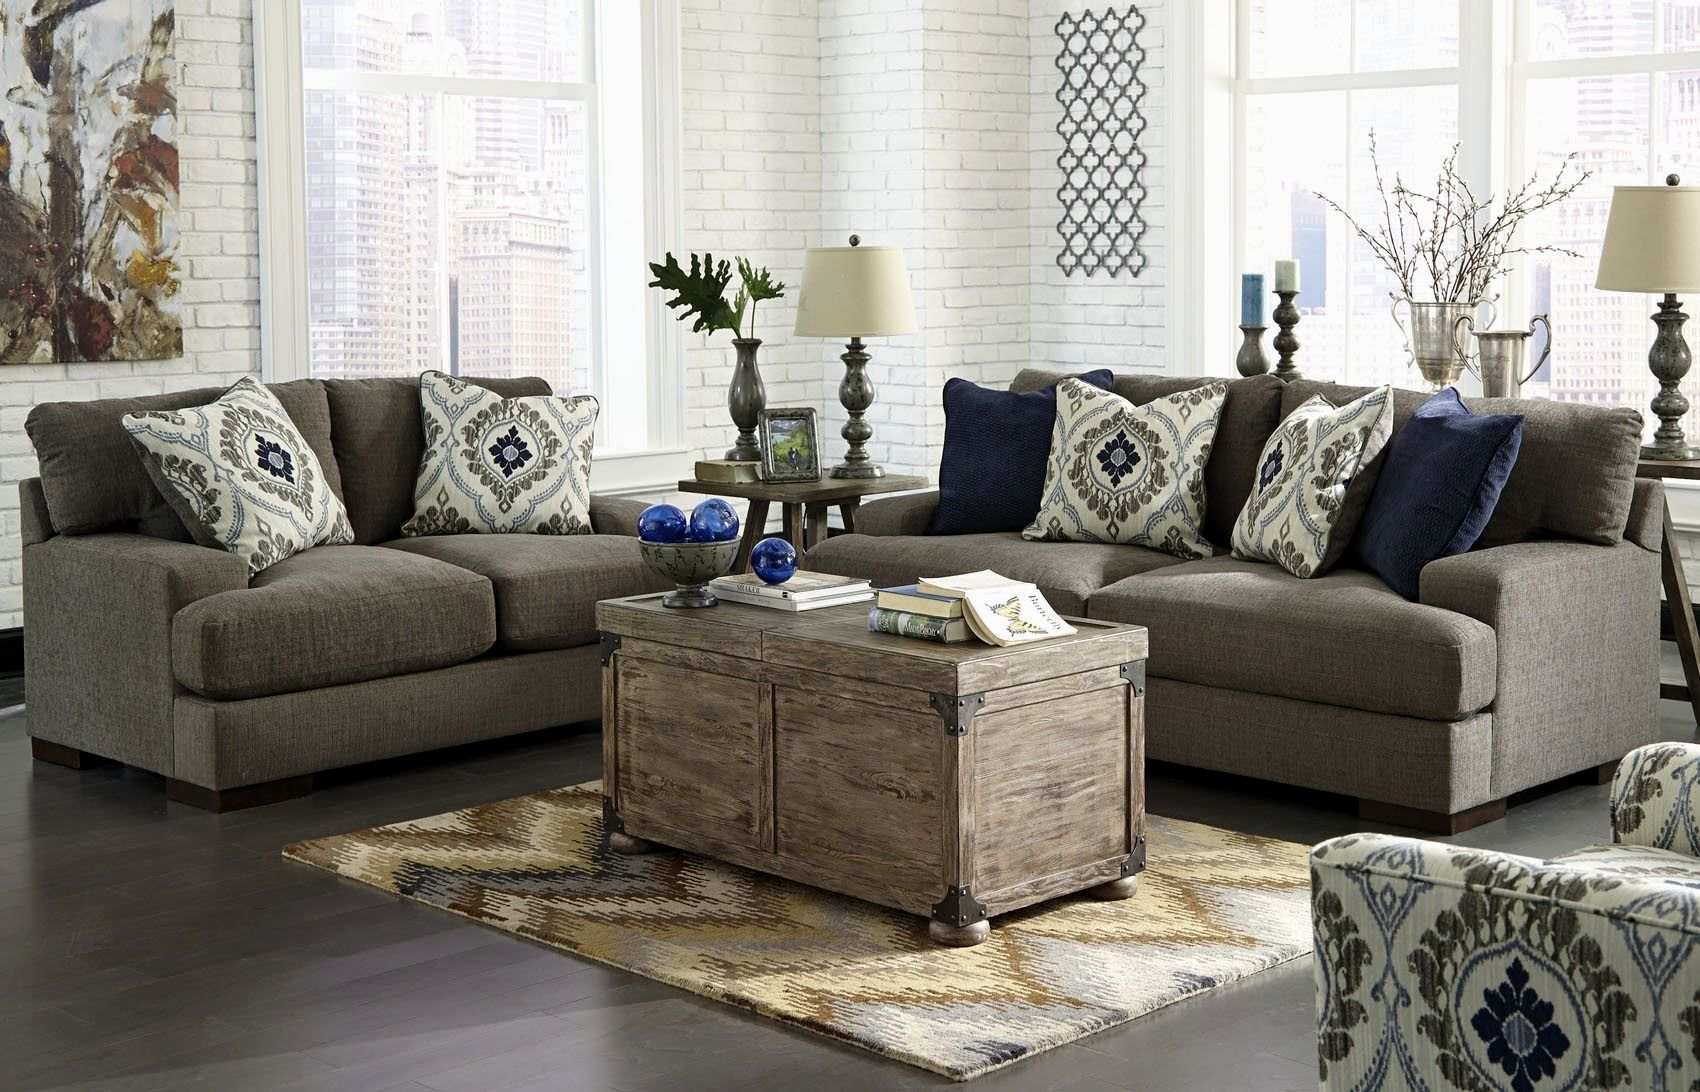 cute sofa sets on sale inspiration-Unique sofa Sets On Sale Concept